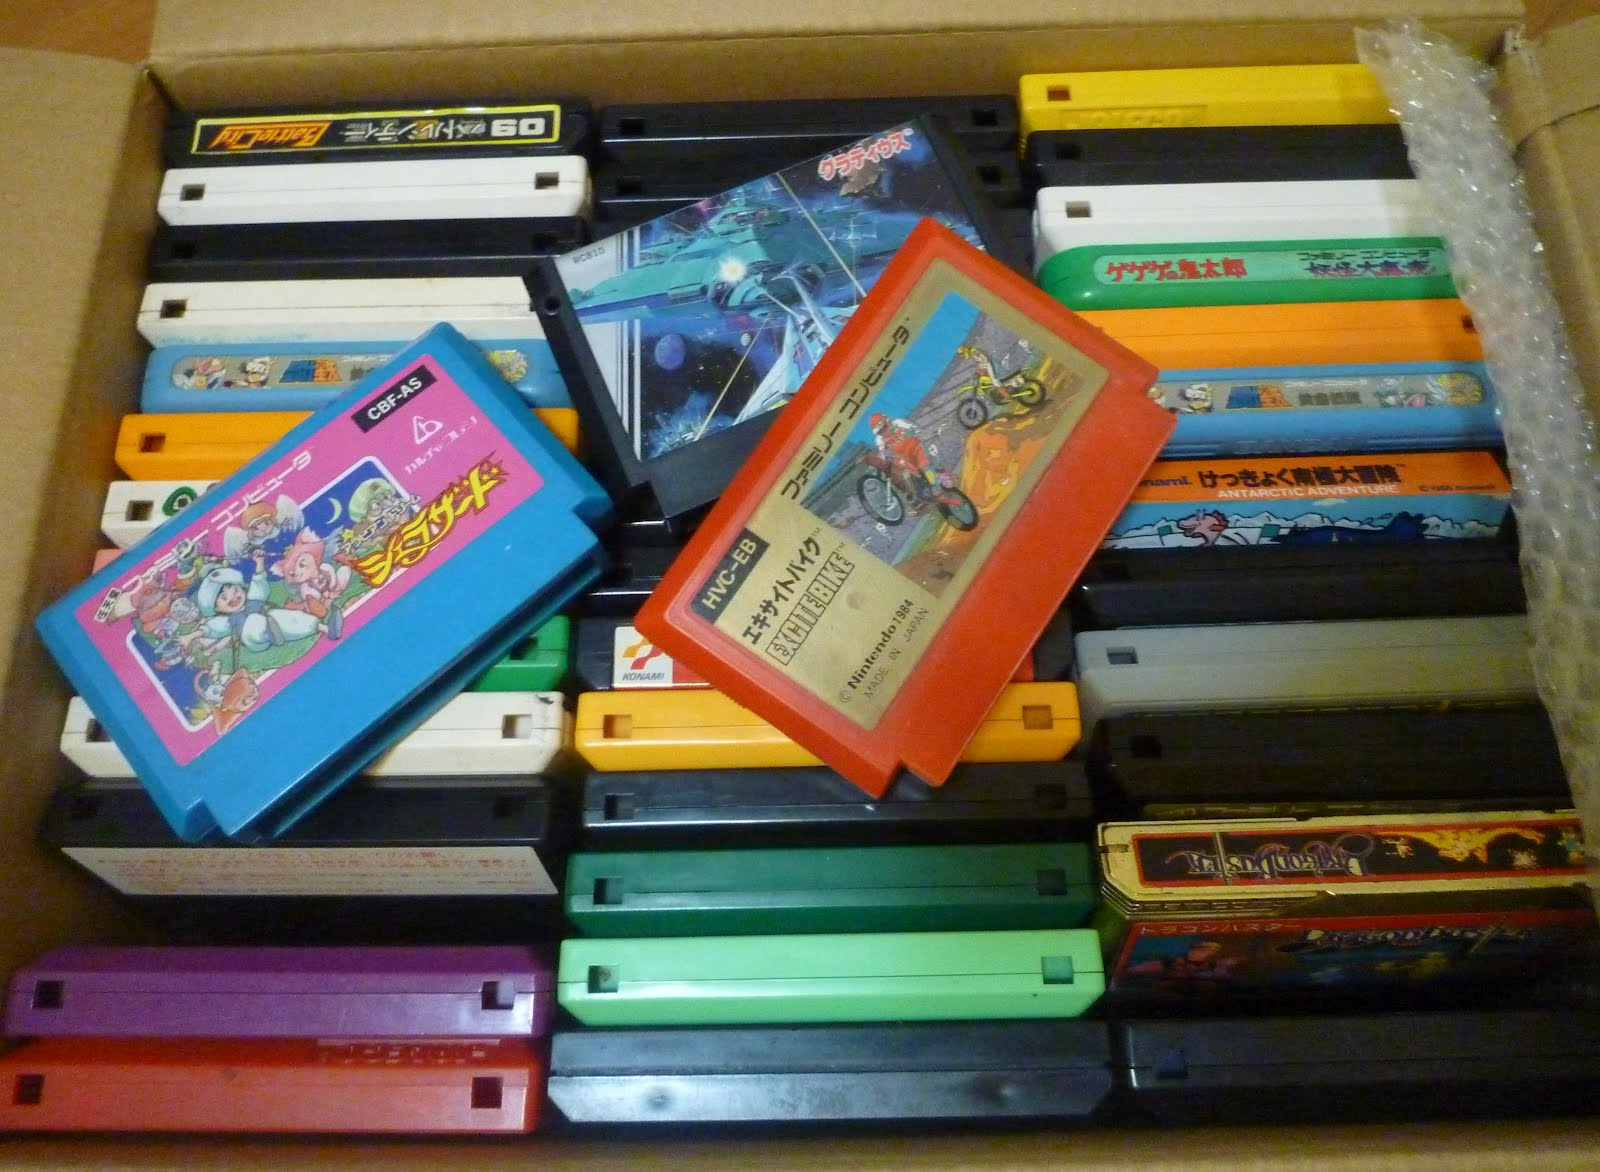 Famicomblog Losing My Yahoo Japan Auction Virginity Better Than Losing My Actual Virginity